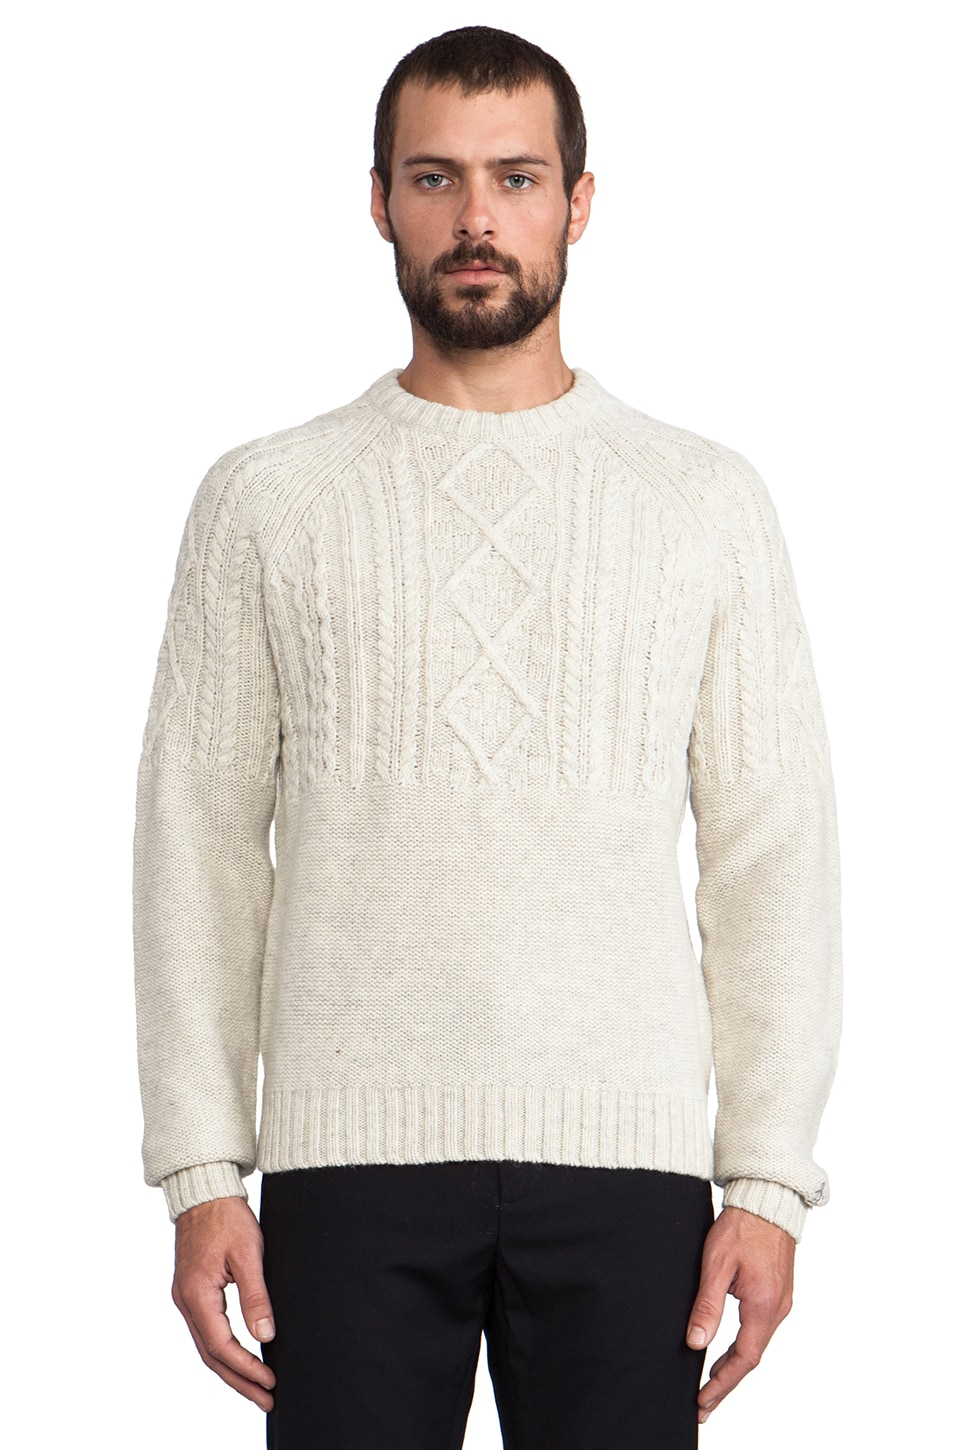 Penguin Cable Knit Pullover in Light Silver Marl